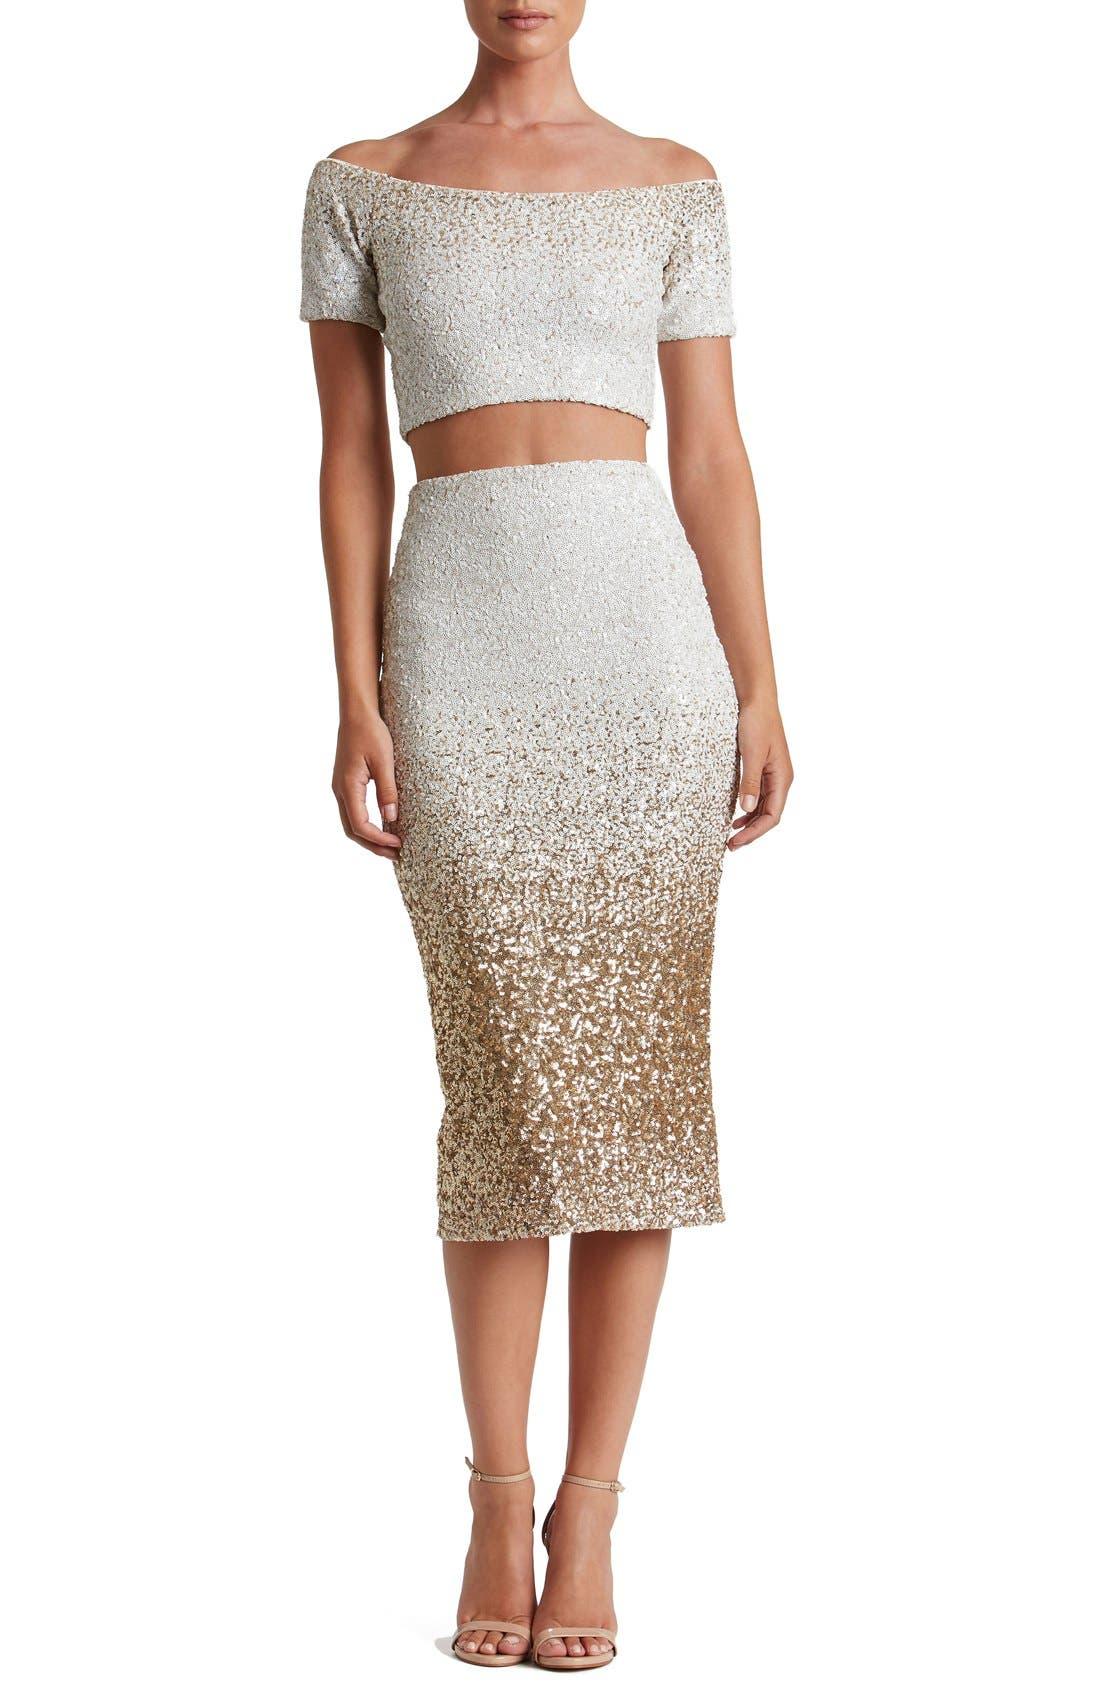 Alternate Image 1 Selected - Dress the Population Emilia Sequin Two-Piece Dress